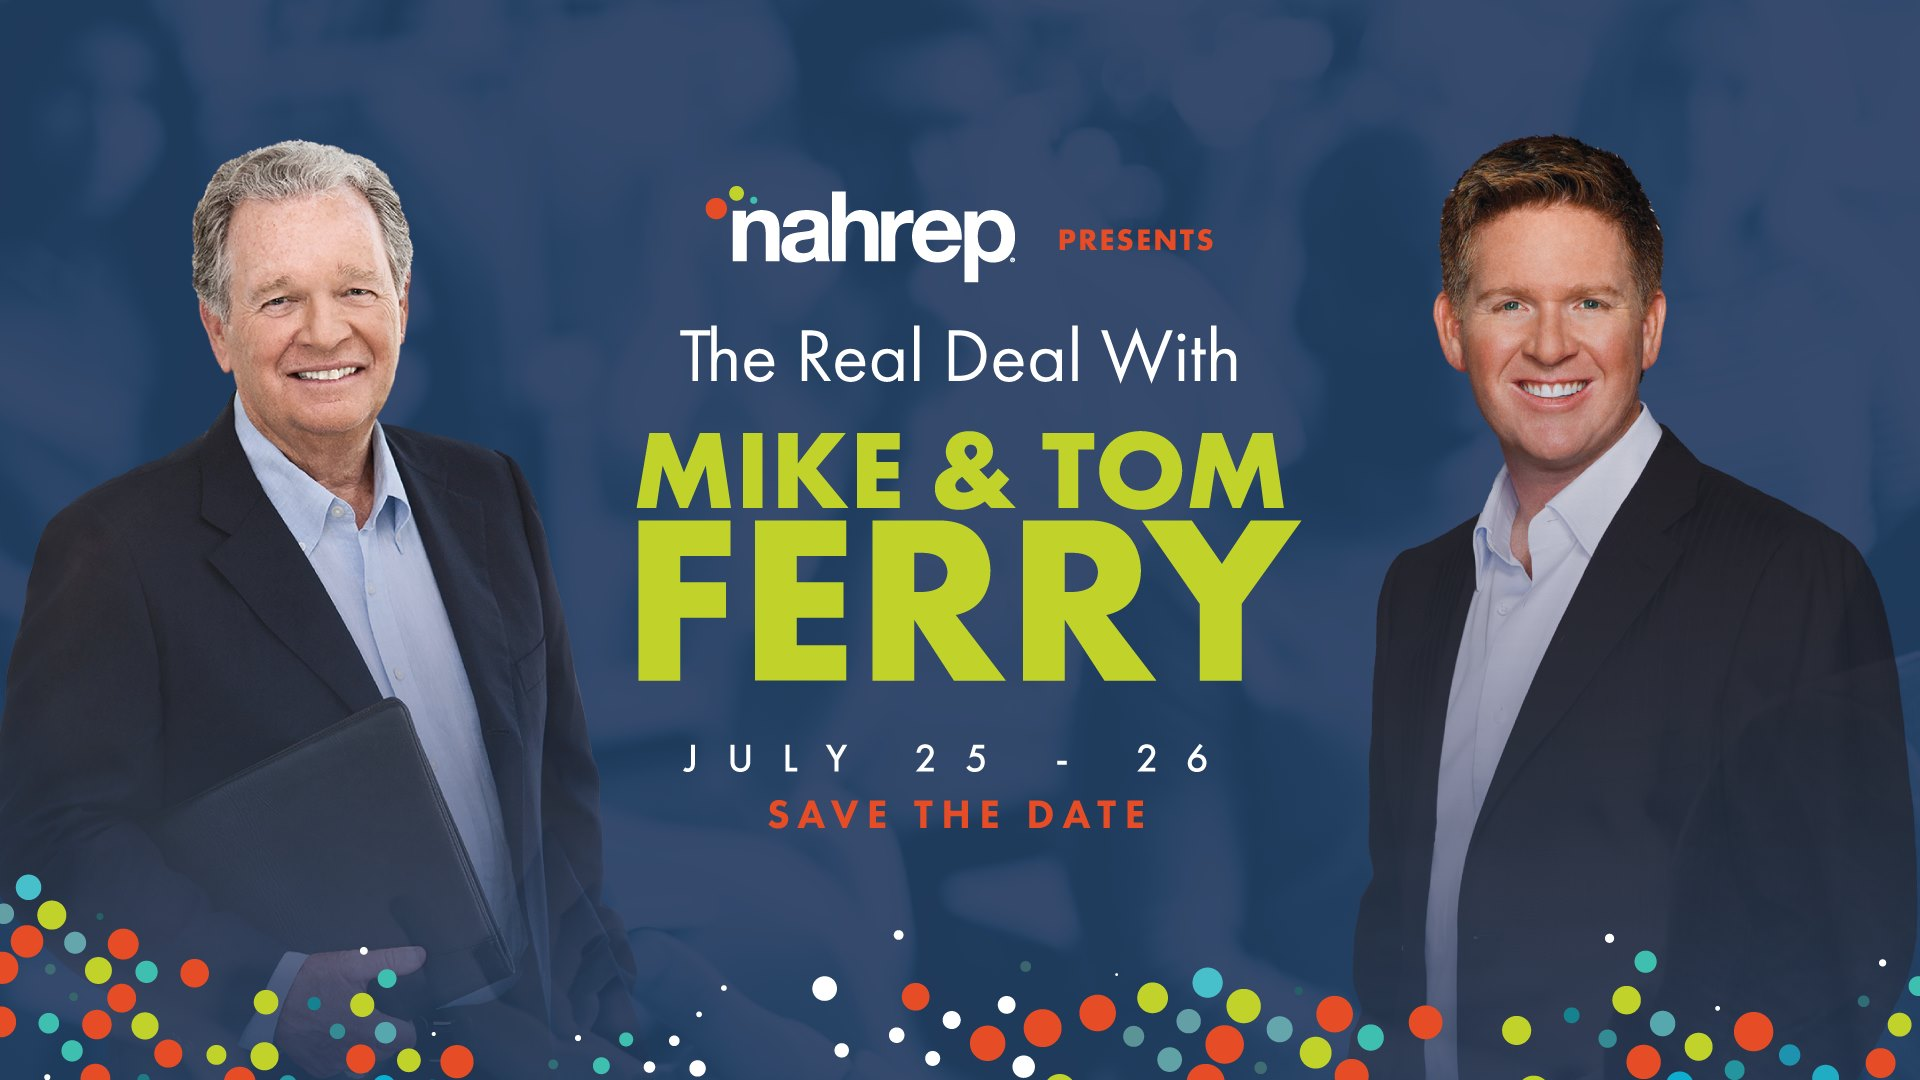 """NAHREP Presents """"The Real Deal with Mike & Tom Ferry"""""""